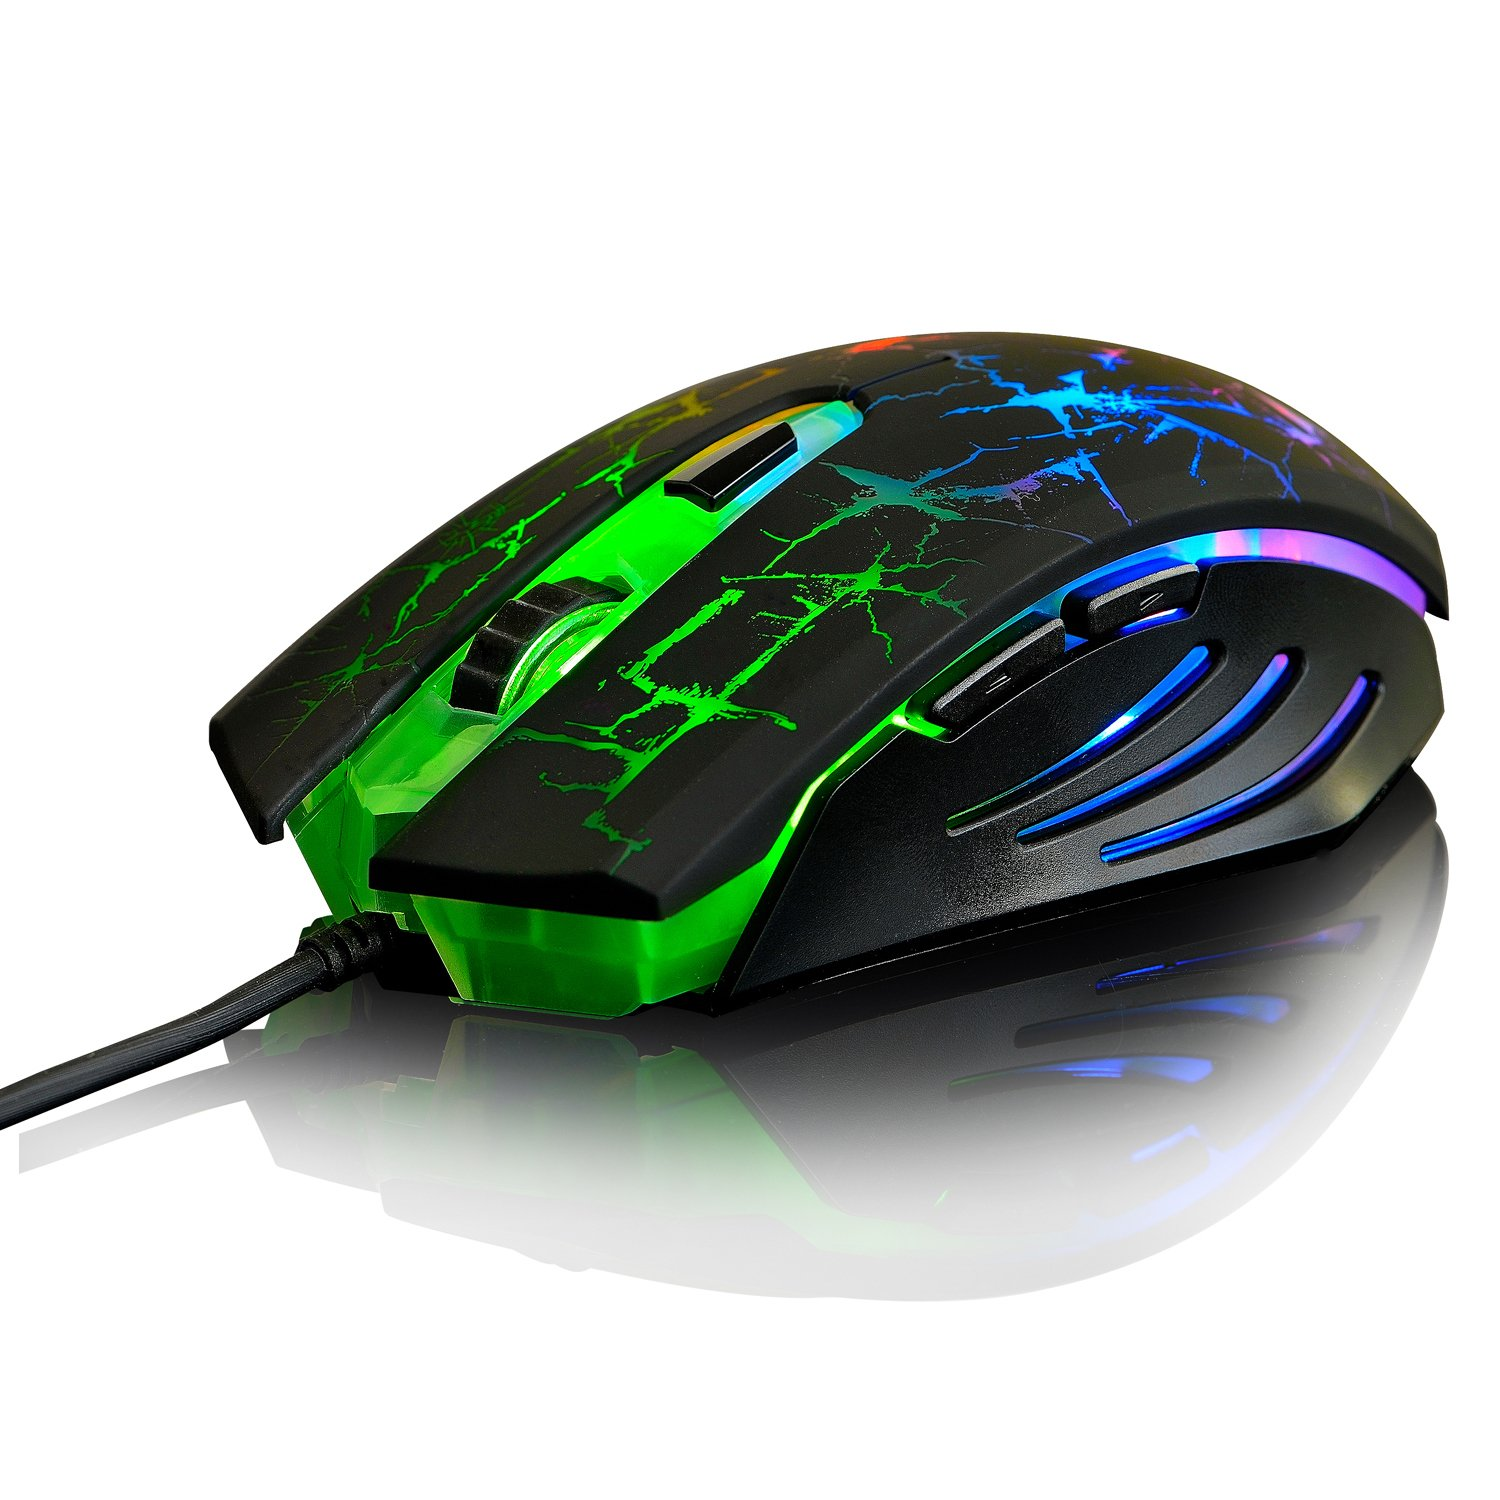 Ajazz Dark Knight Ergonomic Wired Mouse, 7 LED Rainbow Backlight 6 Buttons for Office Games and Daily Use